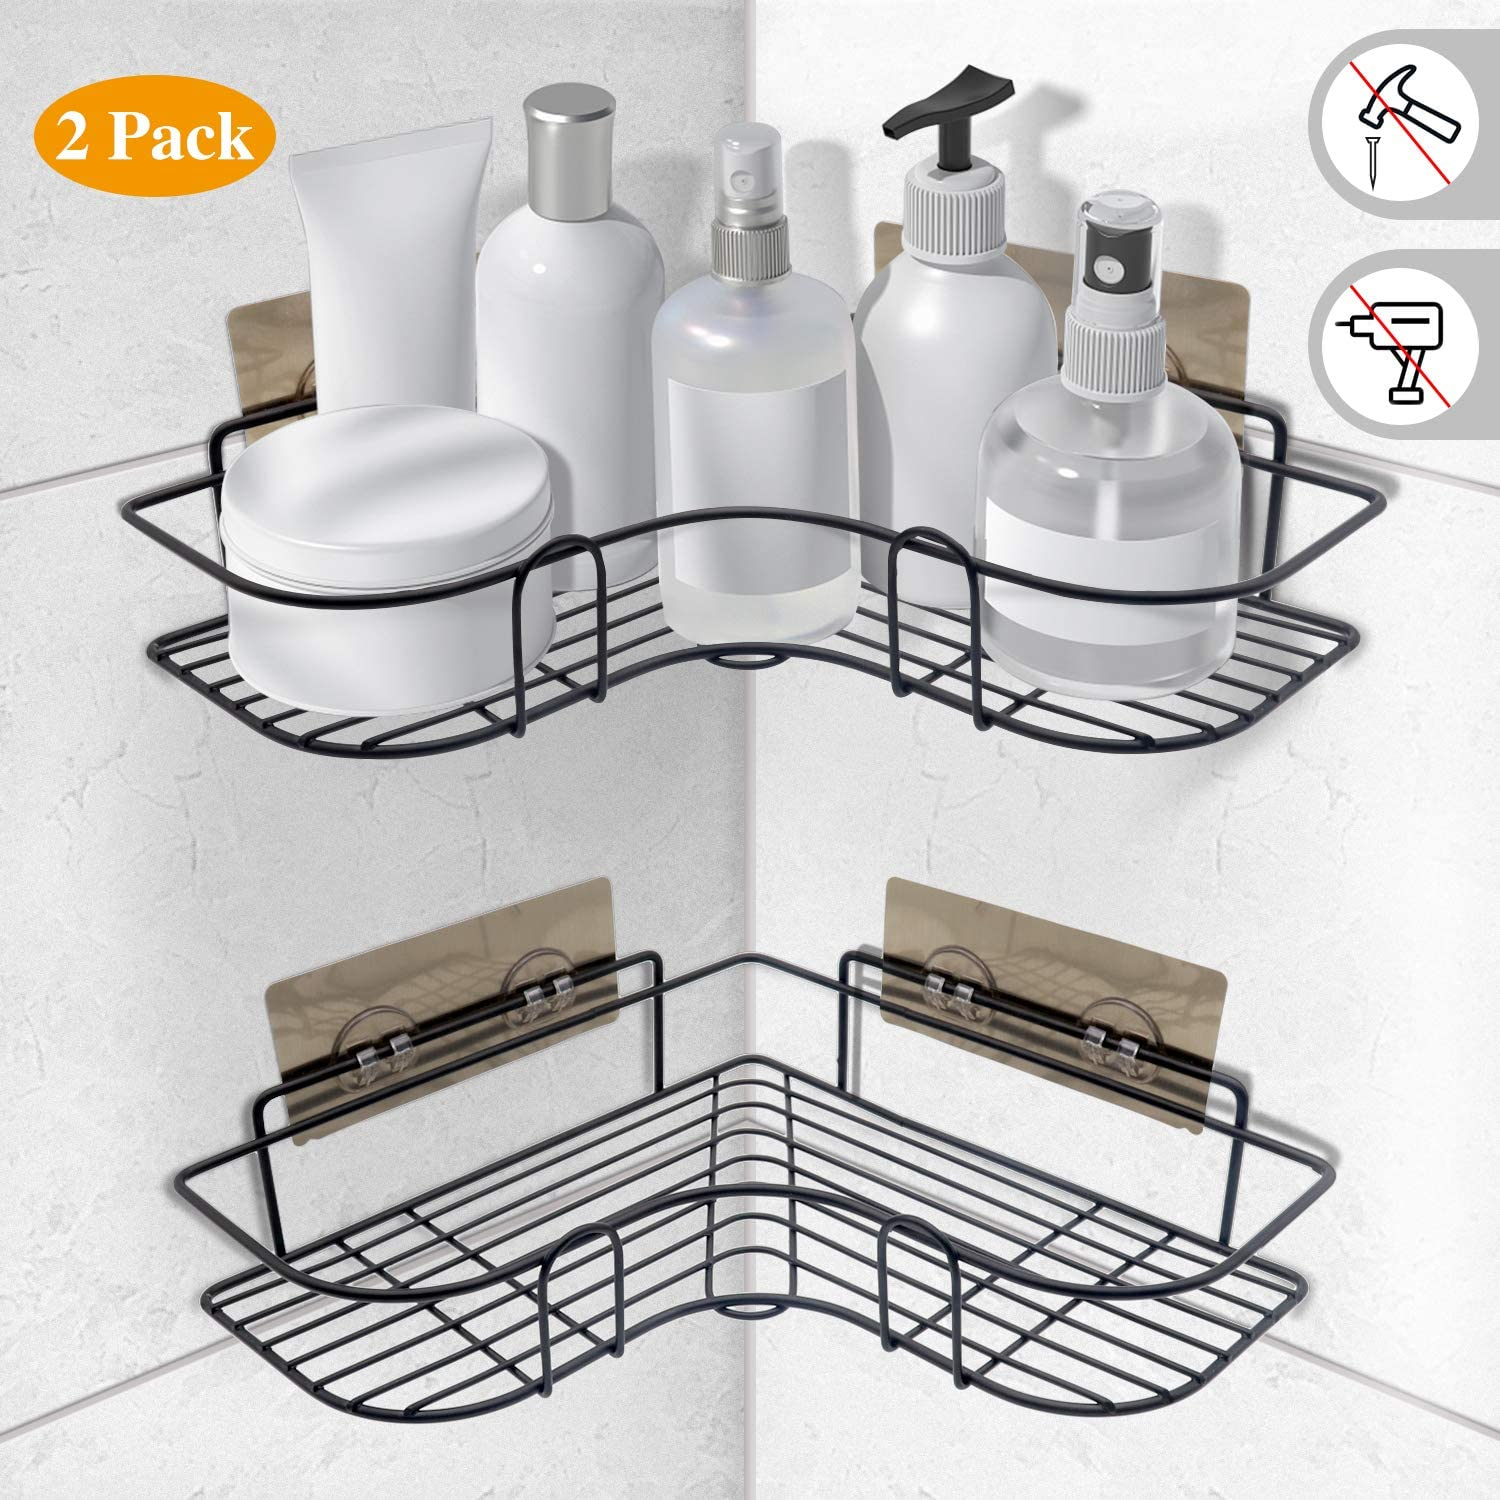 SYOSIN Bathroom Shower Corner Shelves,Shower Organizer Storage,No Drilling Shower Caddy Shower Basket Organizer with Adhesive Sticker for Kitchen & Bathroom Accessories(2 Tier, Black)